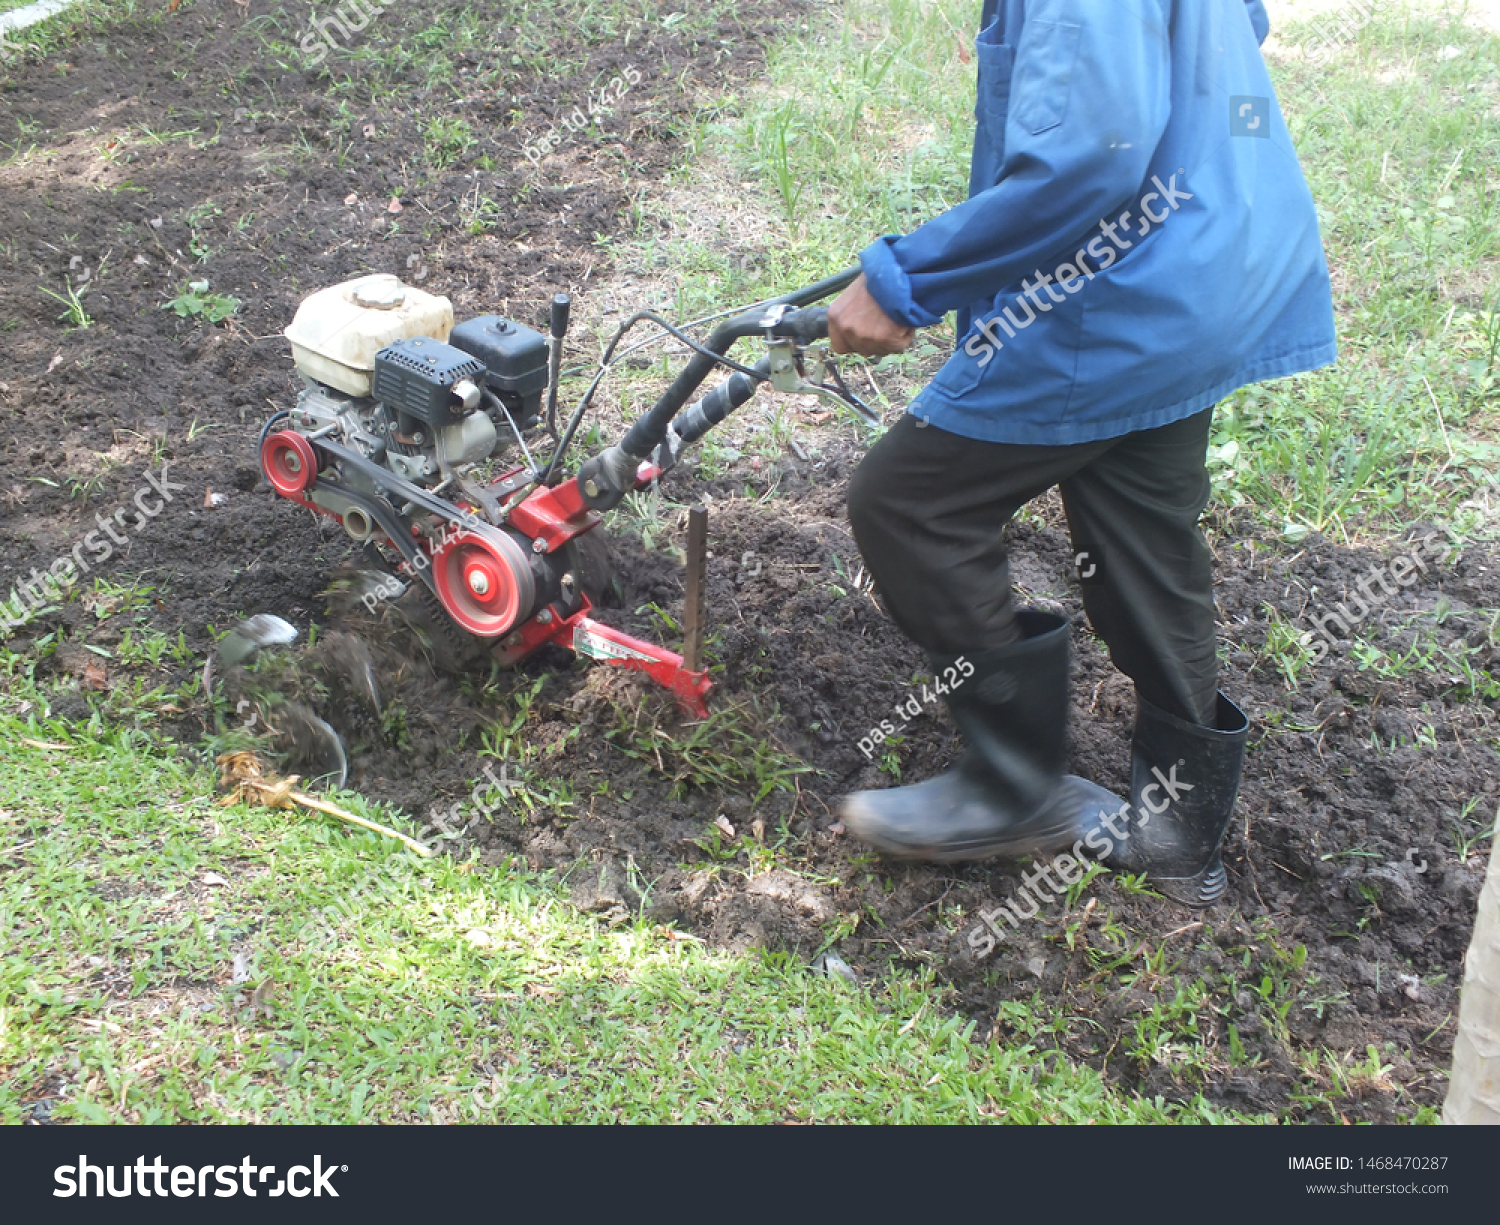 Farmer plowing the land in the garden with a hand tractor cultivator,Soil cultivation.  #1468470287